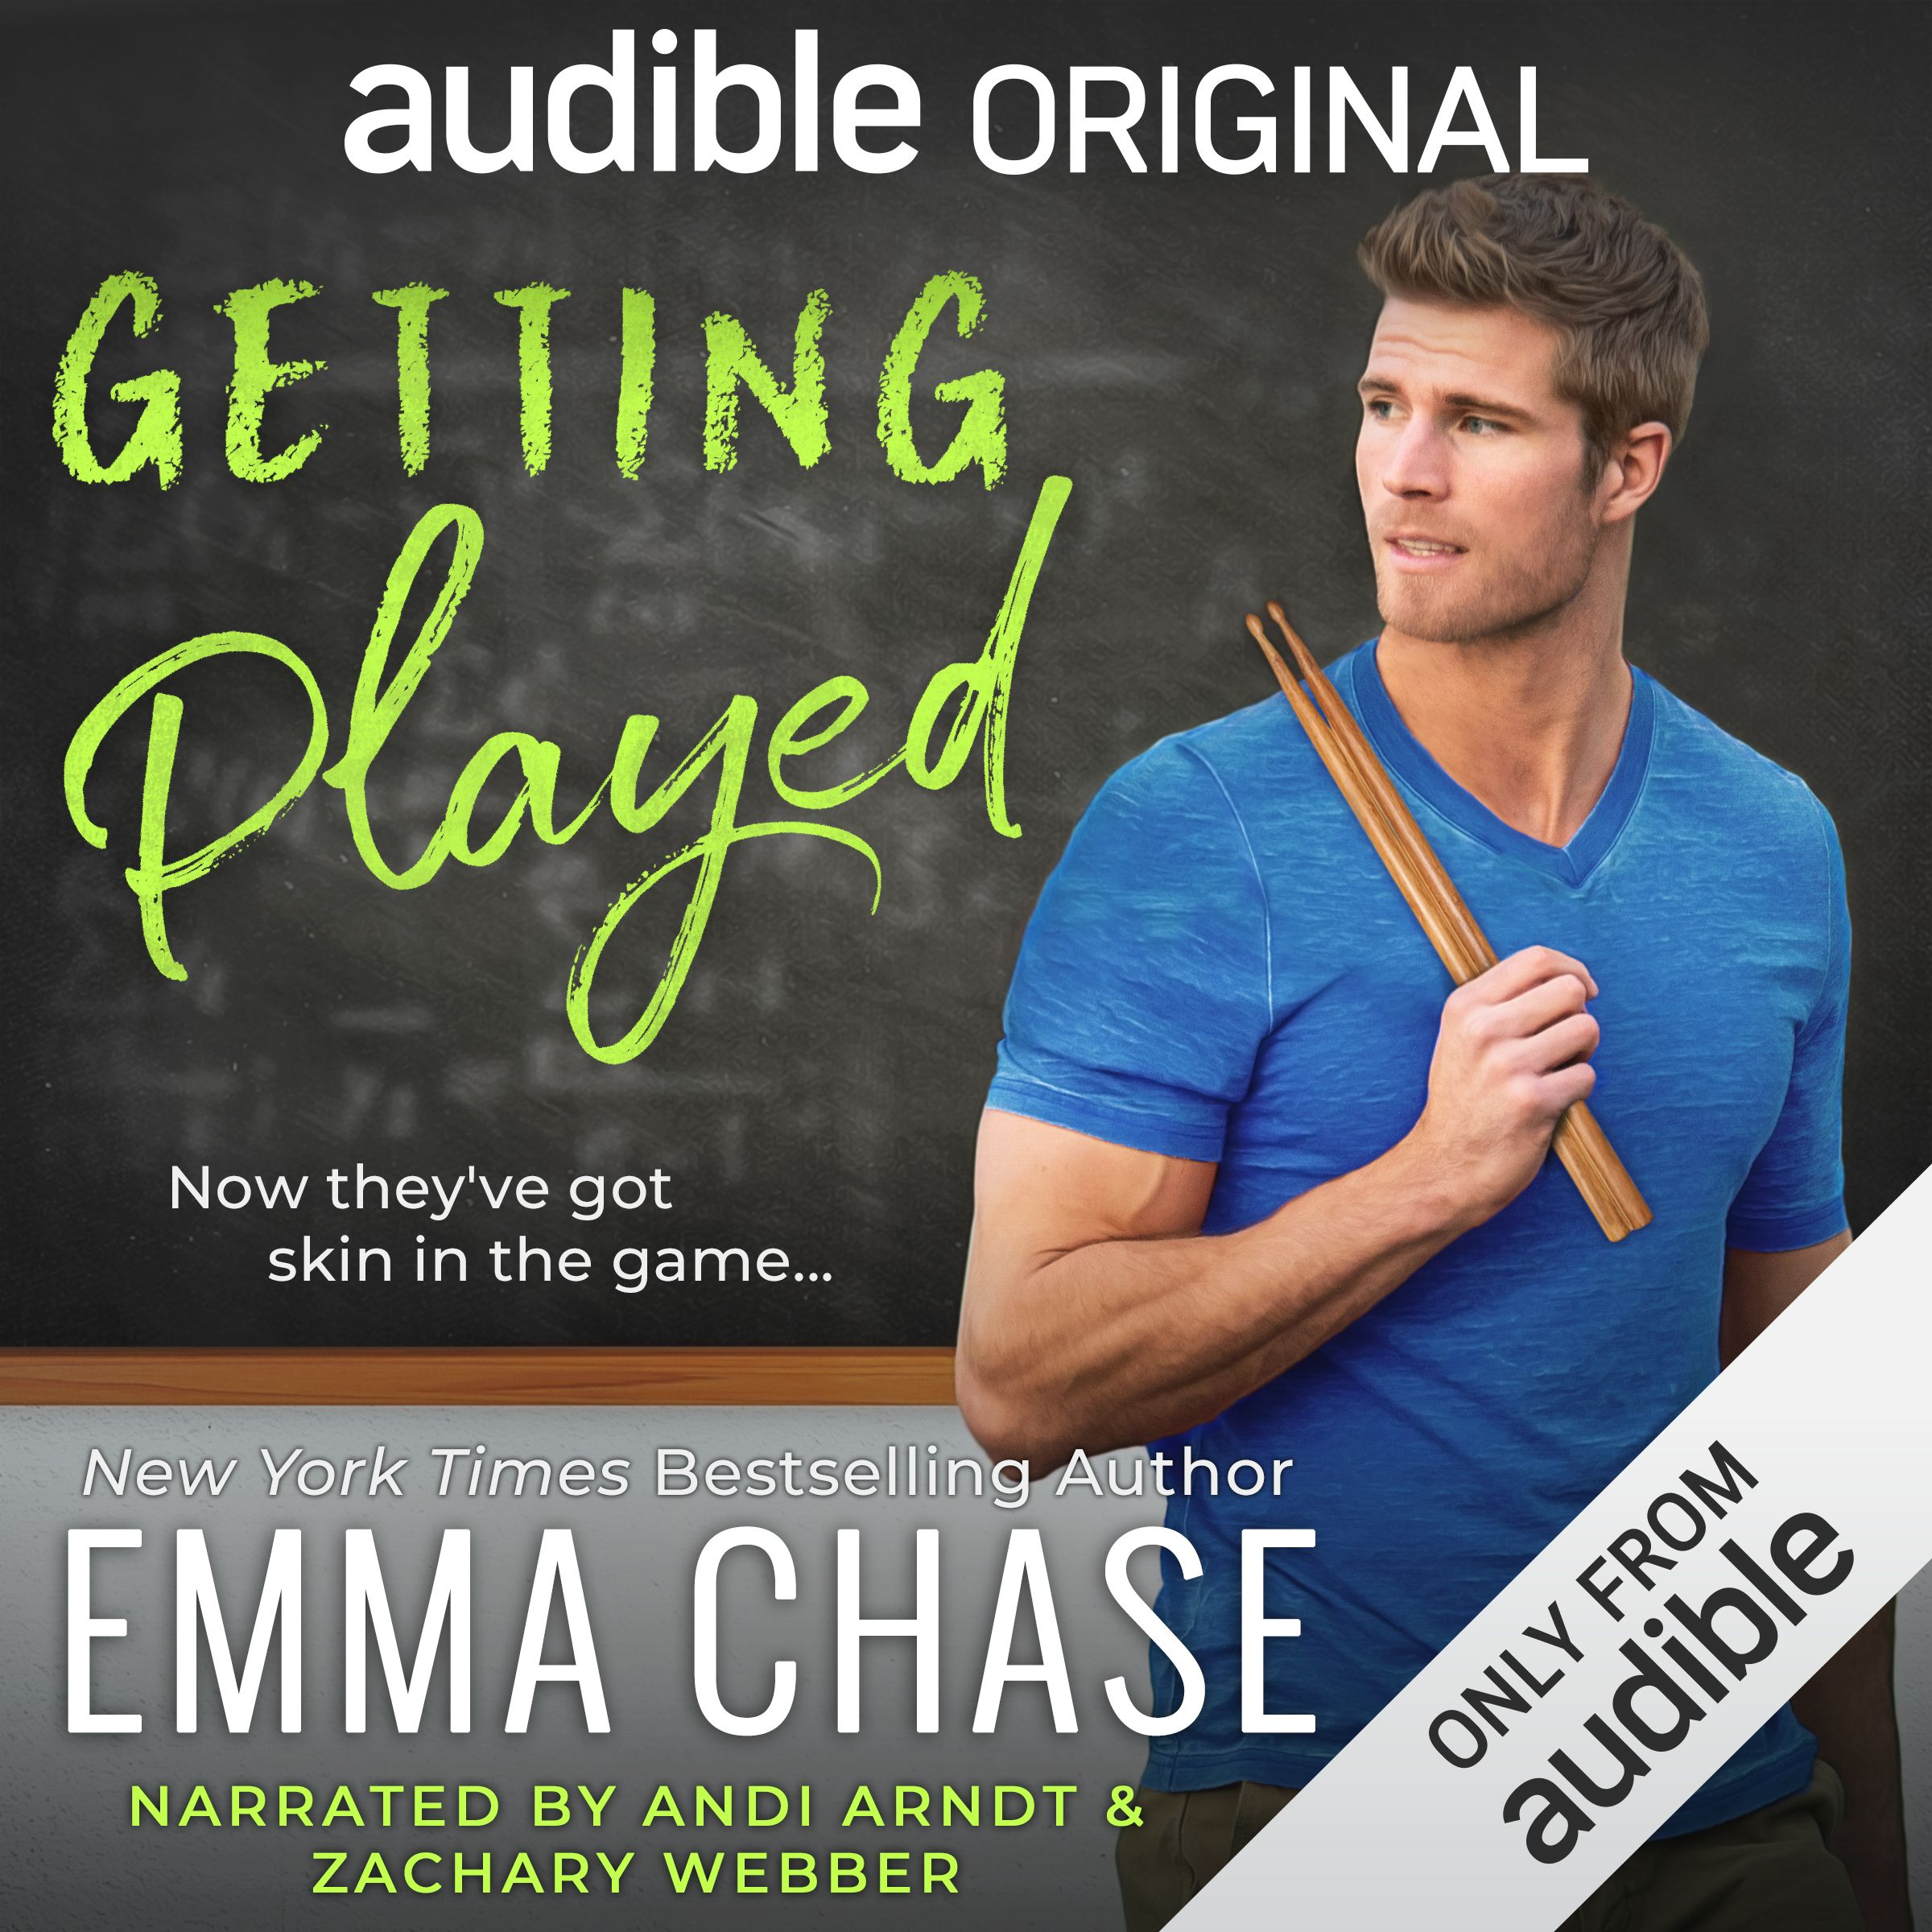 I Love Romance: NEW TO AUDIO (AUDIBLE EXCLUSIVE): GETTING